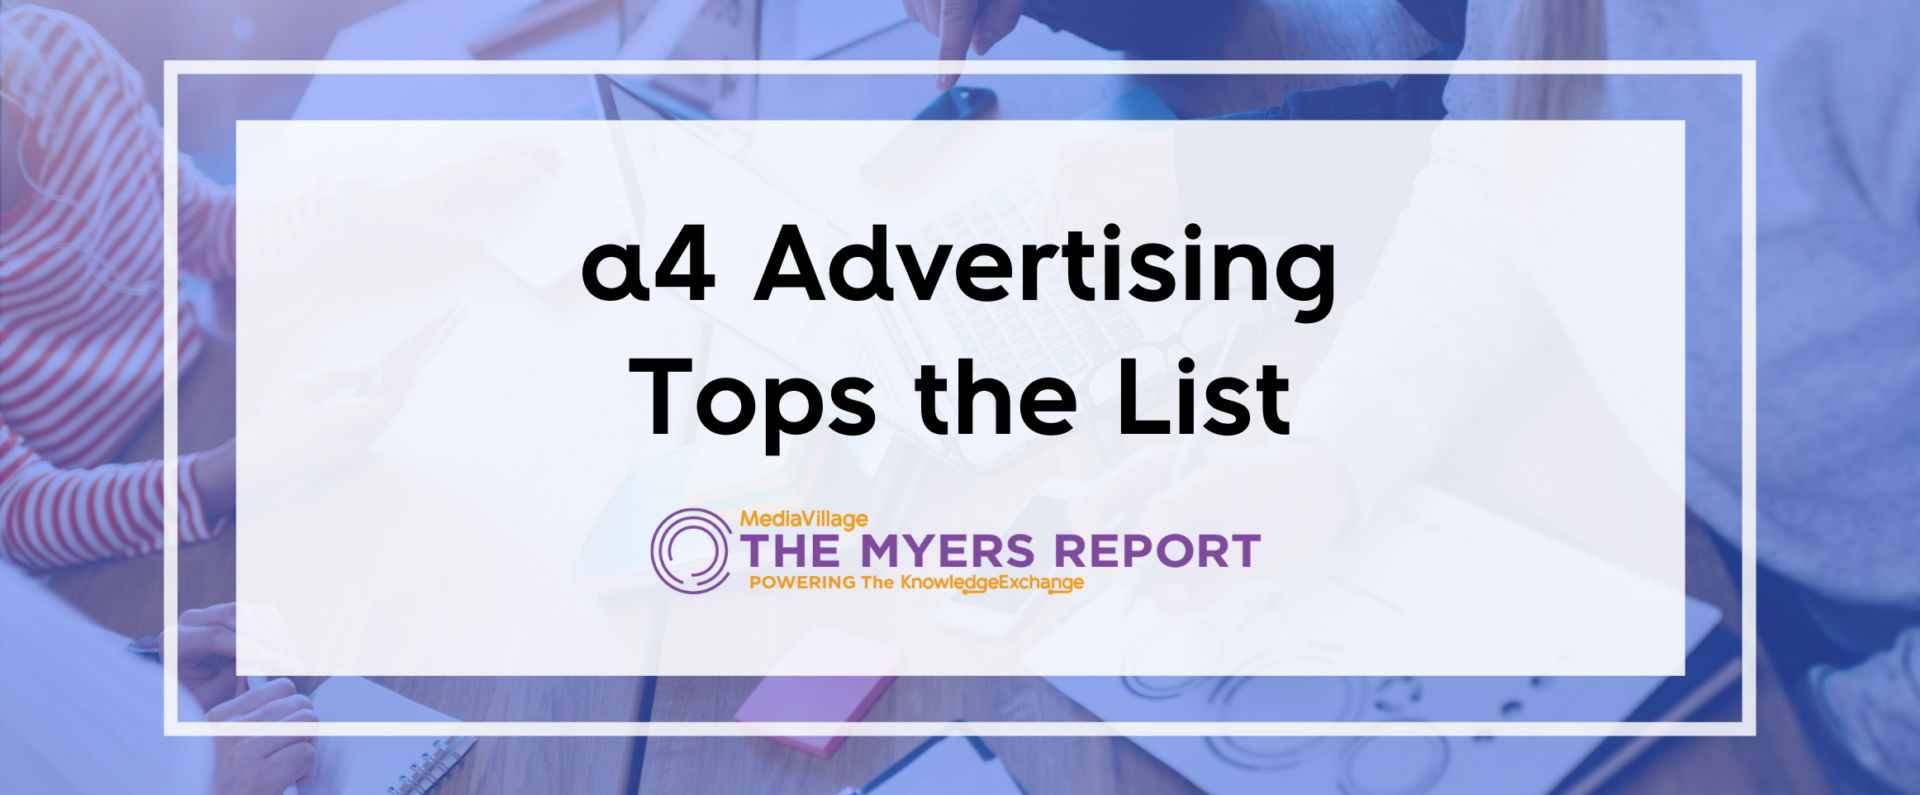 a4 advertising tops the list